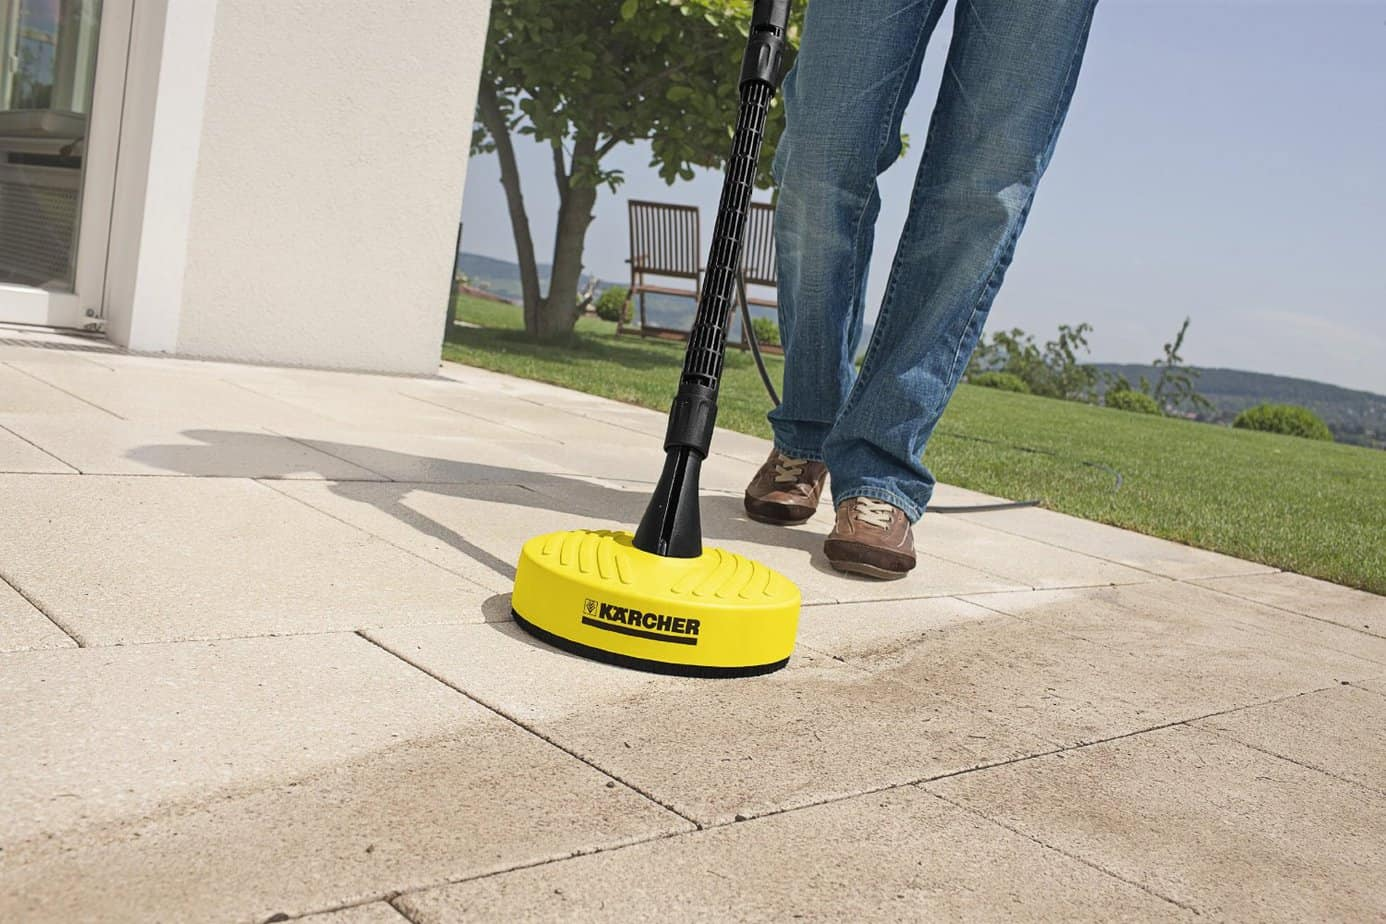 Kärcher K2 Premium Pressure Washer patio cleaner